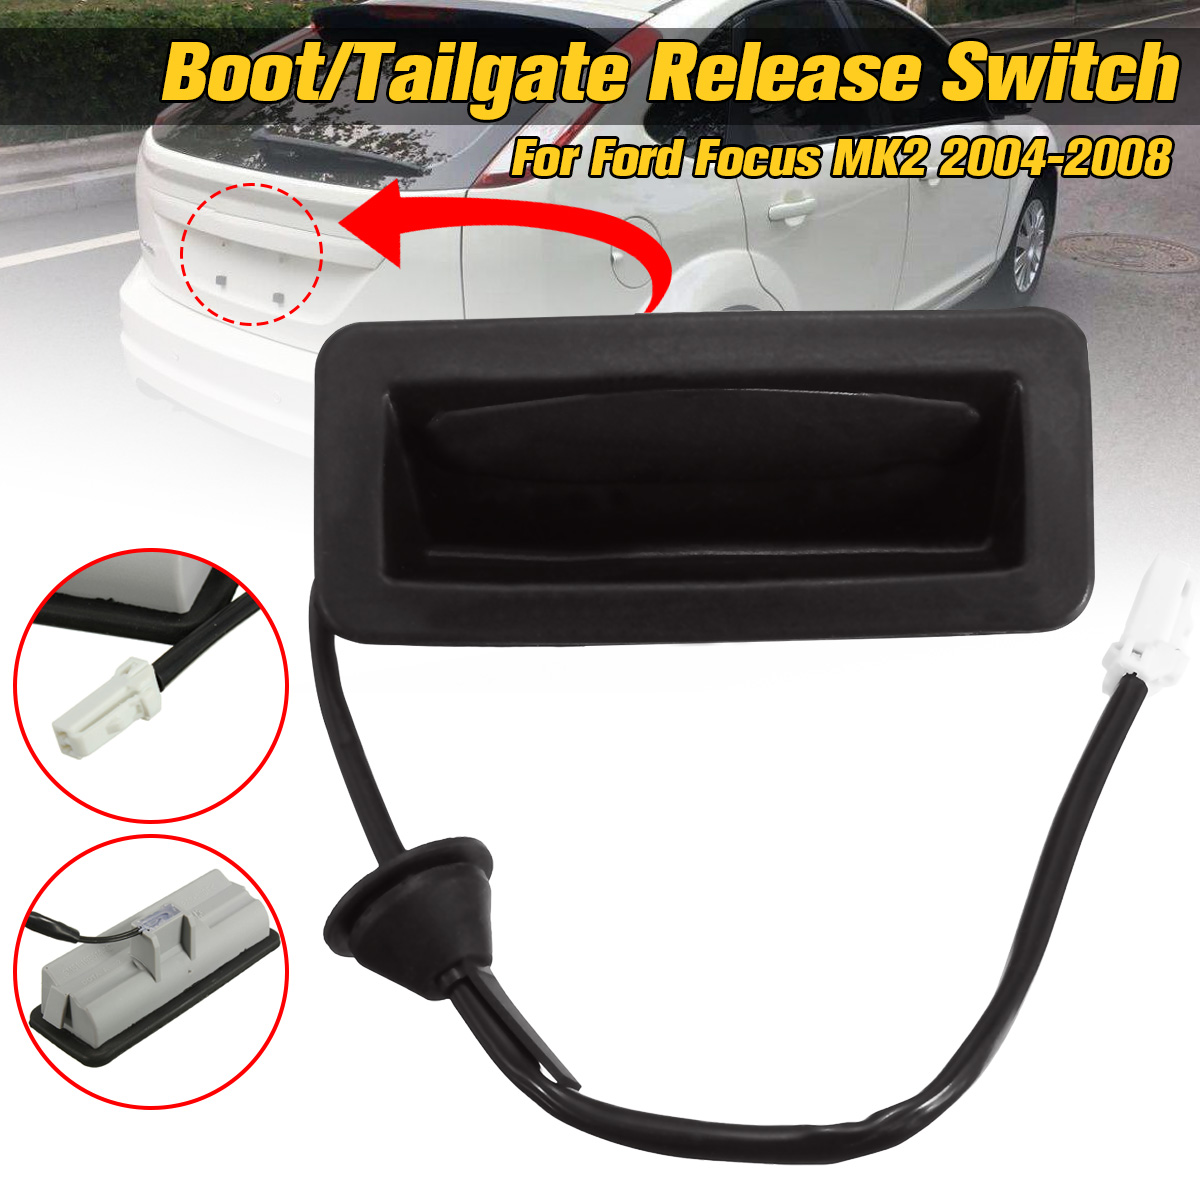 Trunk Switch With Wire Boot Tailgate Release Car Switch For Ford for Focus MK2 2005 2006 2007 2008 3M5119B514AC(China)